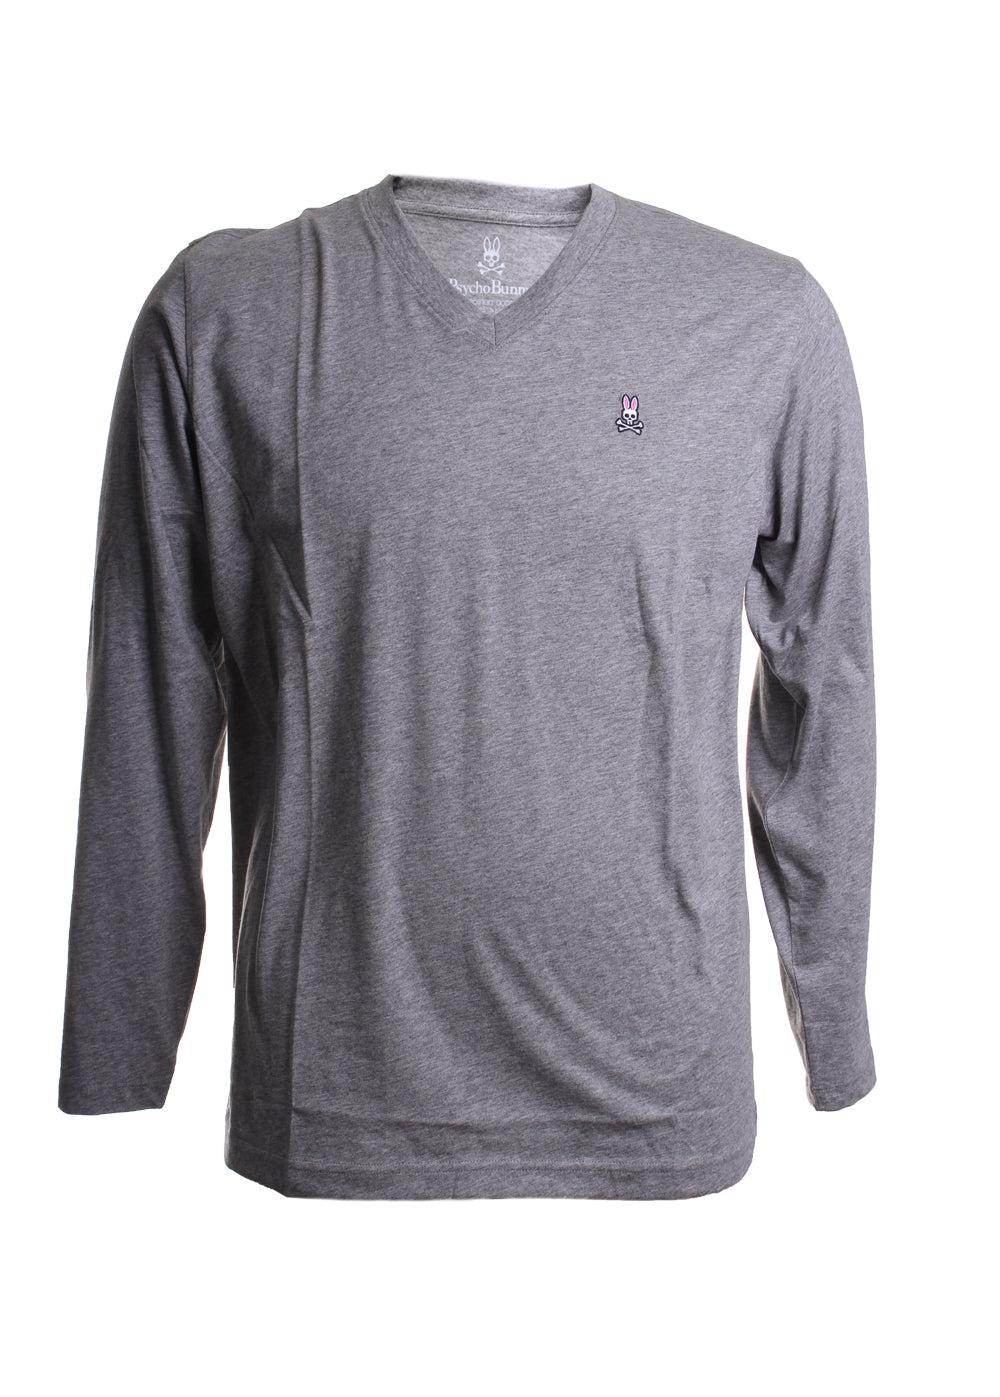 Psycho Bunny Long Sleeve V-Neck Tee in Heather Grey